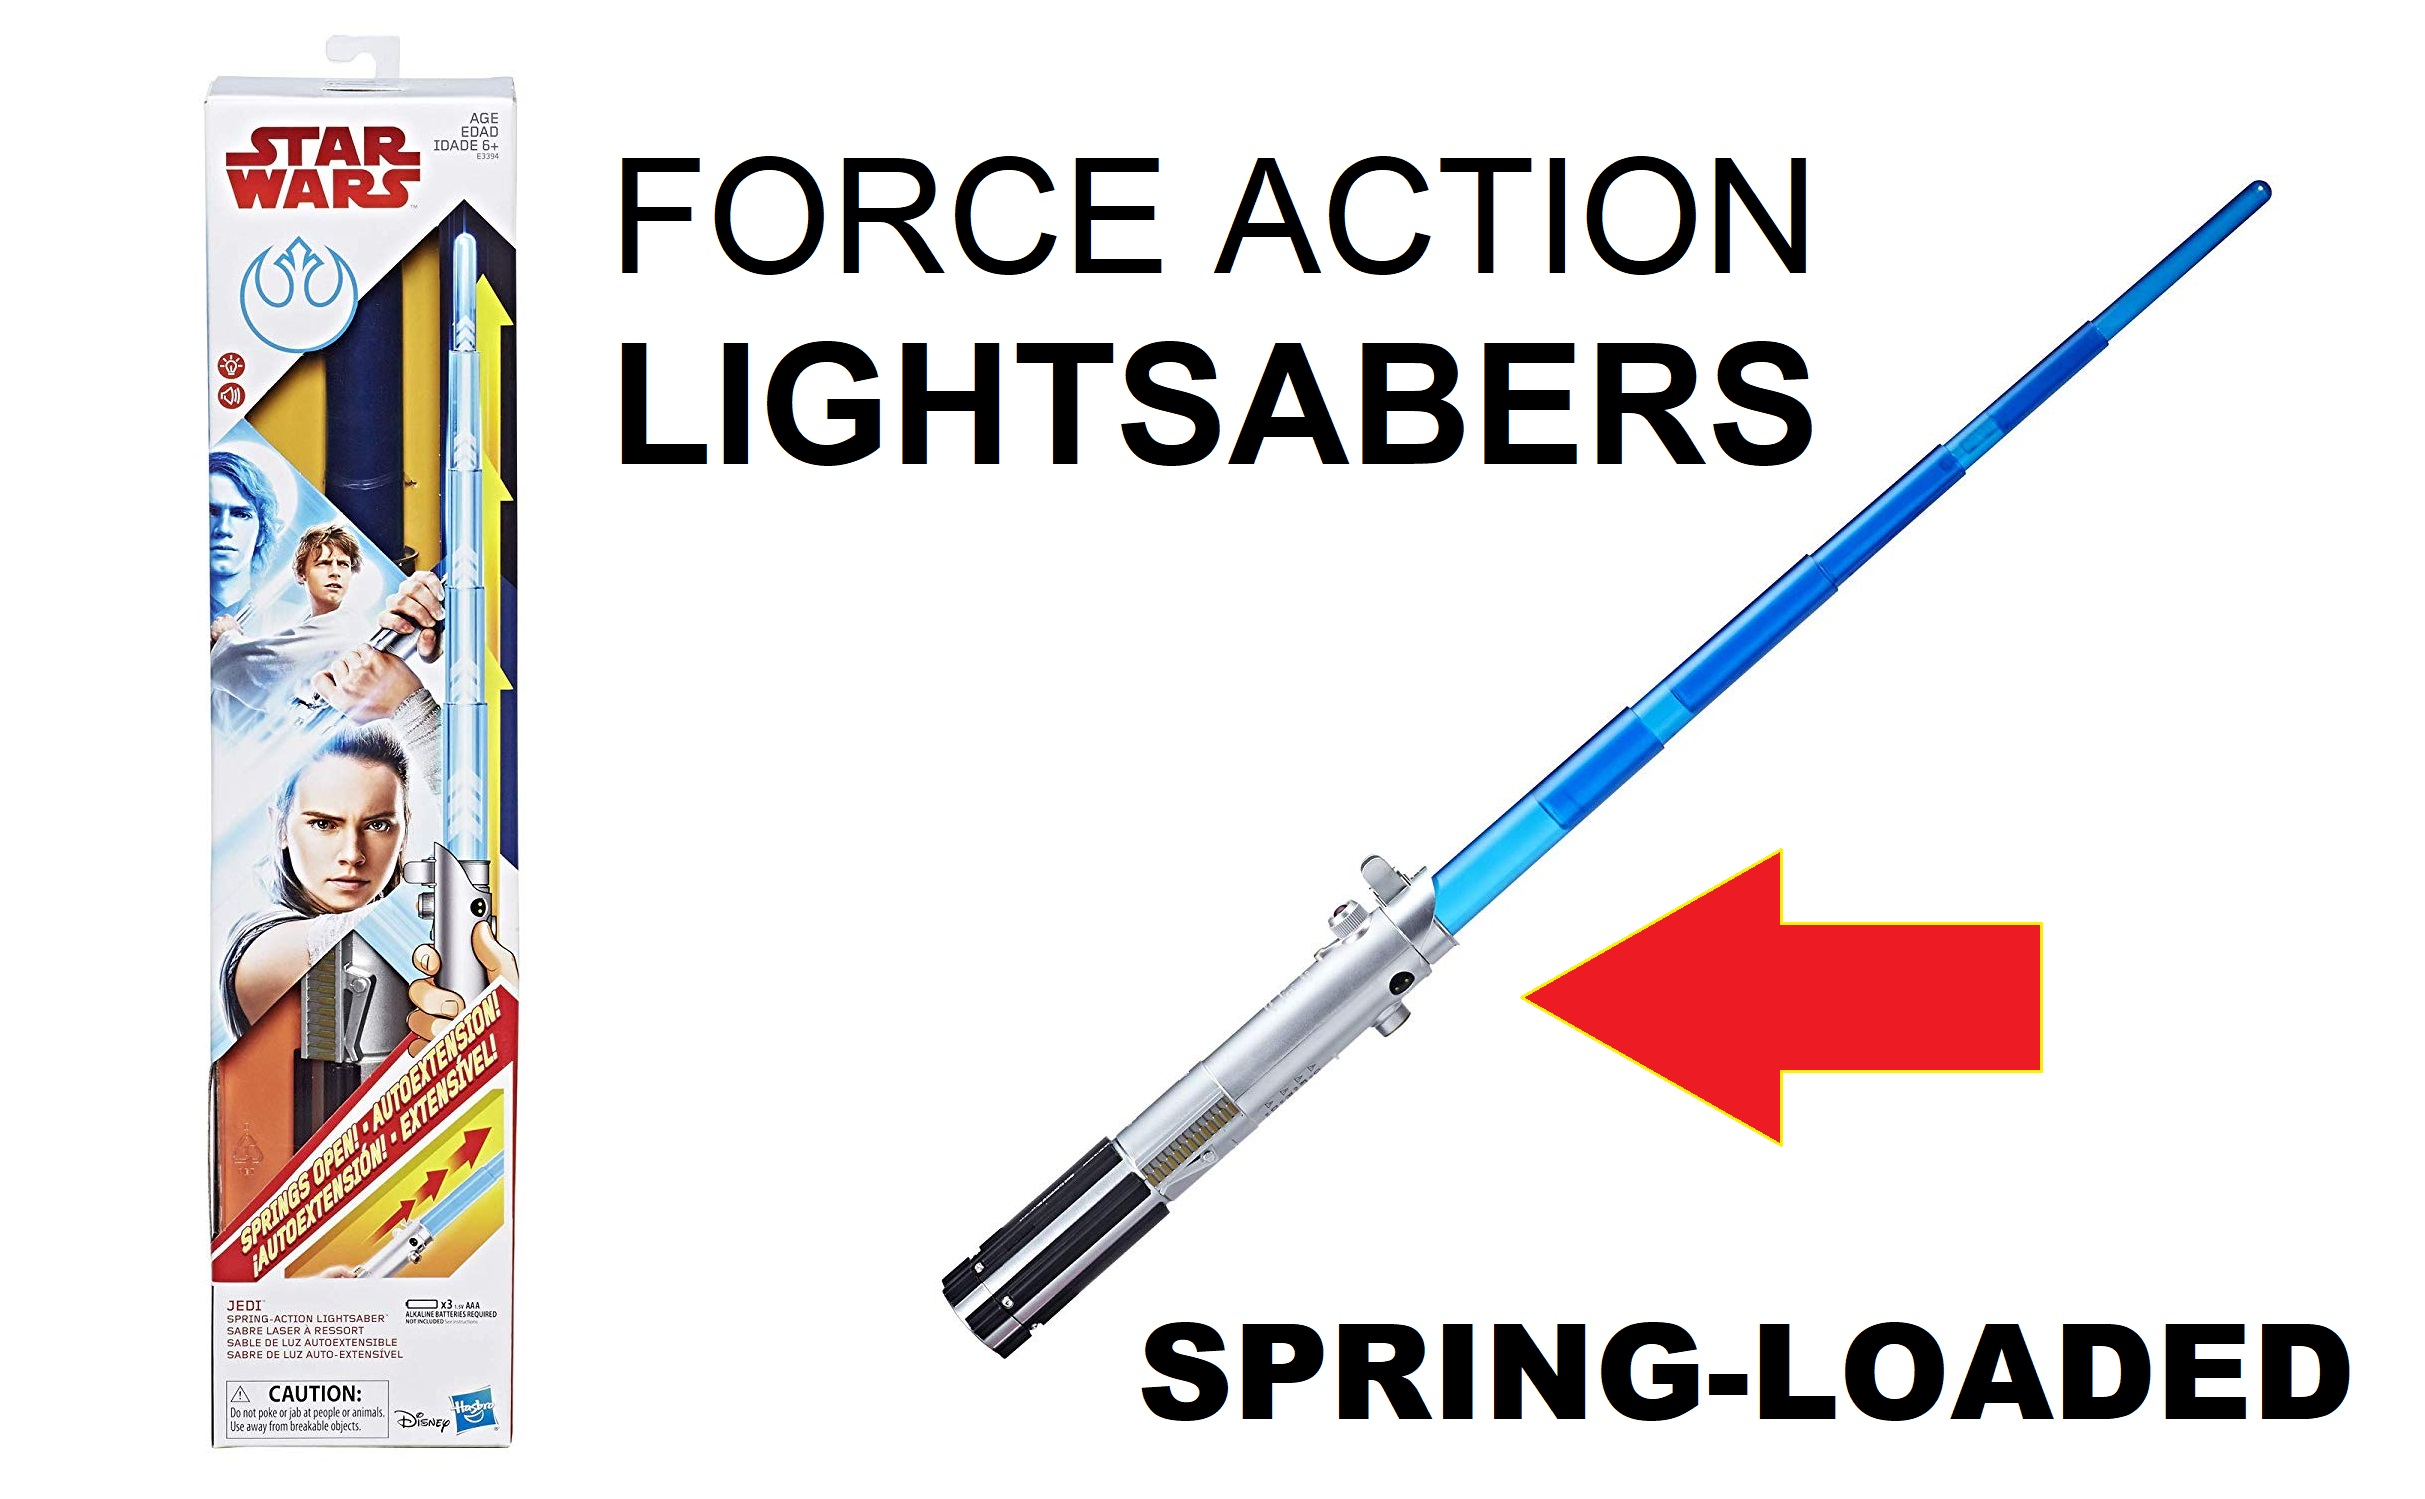 Spring-Action Star Wars Force Action Lightsabers Rey Electronic Lightsaber